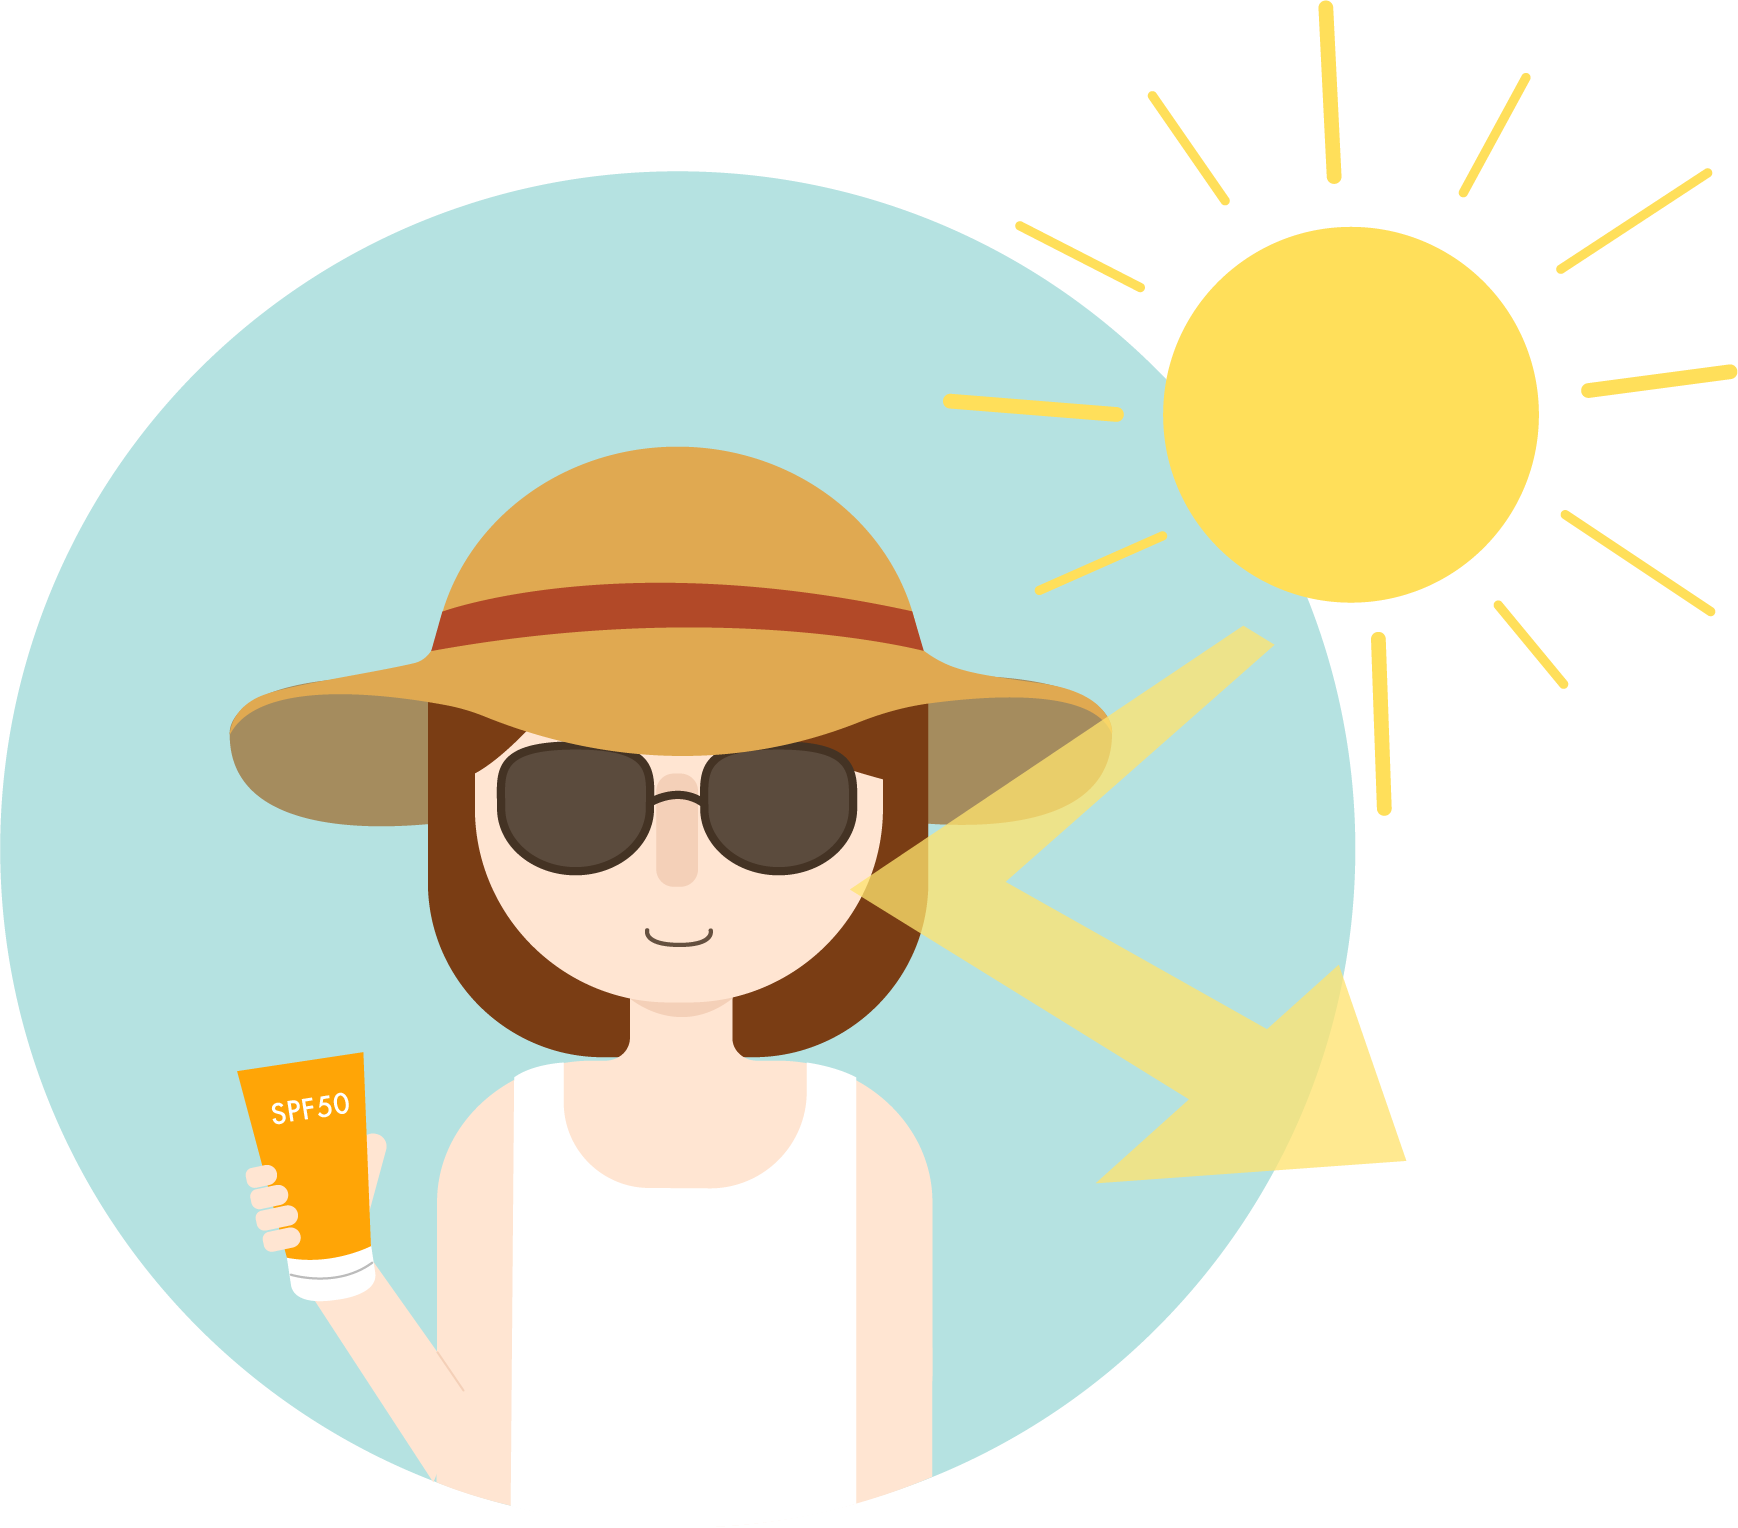 Image of a person in the sun with a hat and sunglasses on.